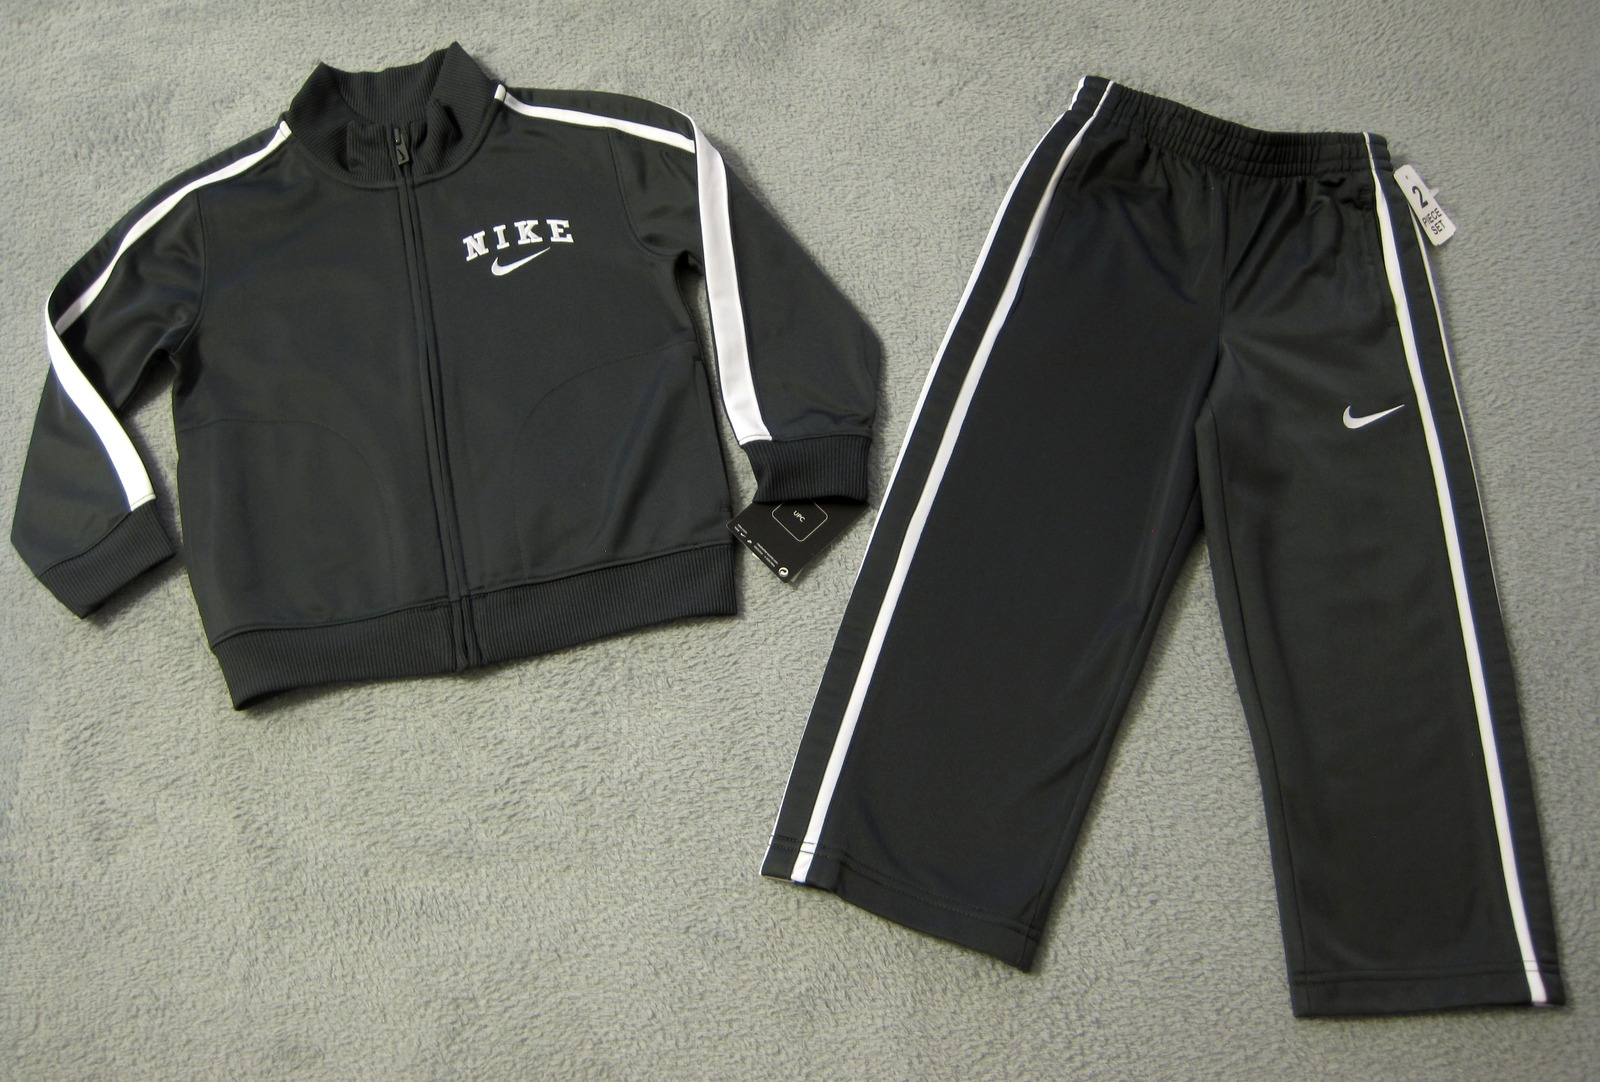 962921cbe6c6b BOYS 6 - Nike - Anthracite Gray Sports Pants   Jacket TRACK SUIT   JOGGING  SET